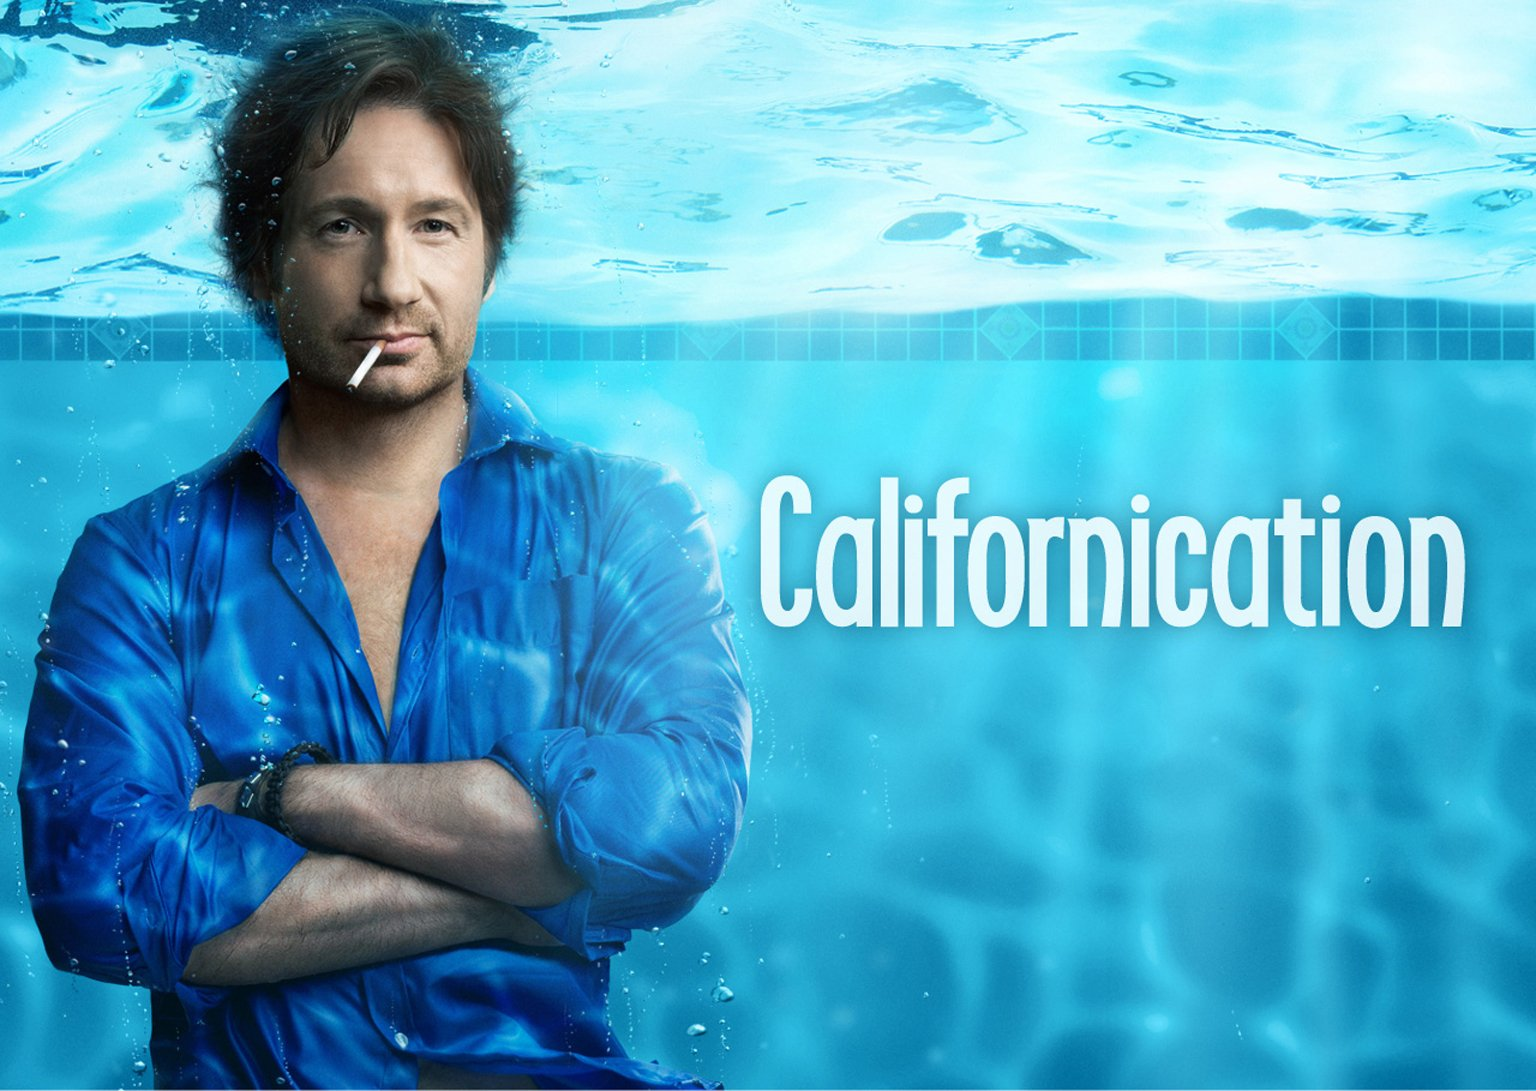 Hank Moody Quotes Wallpaper Californication Wallpaper And Background Image 1536x1091